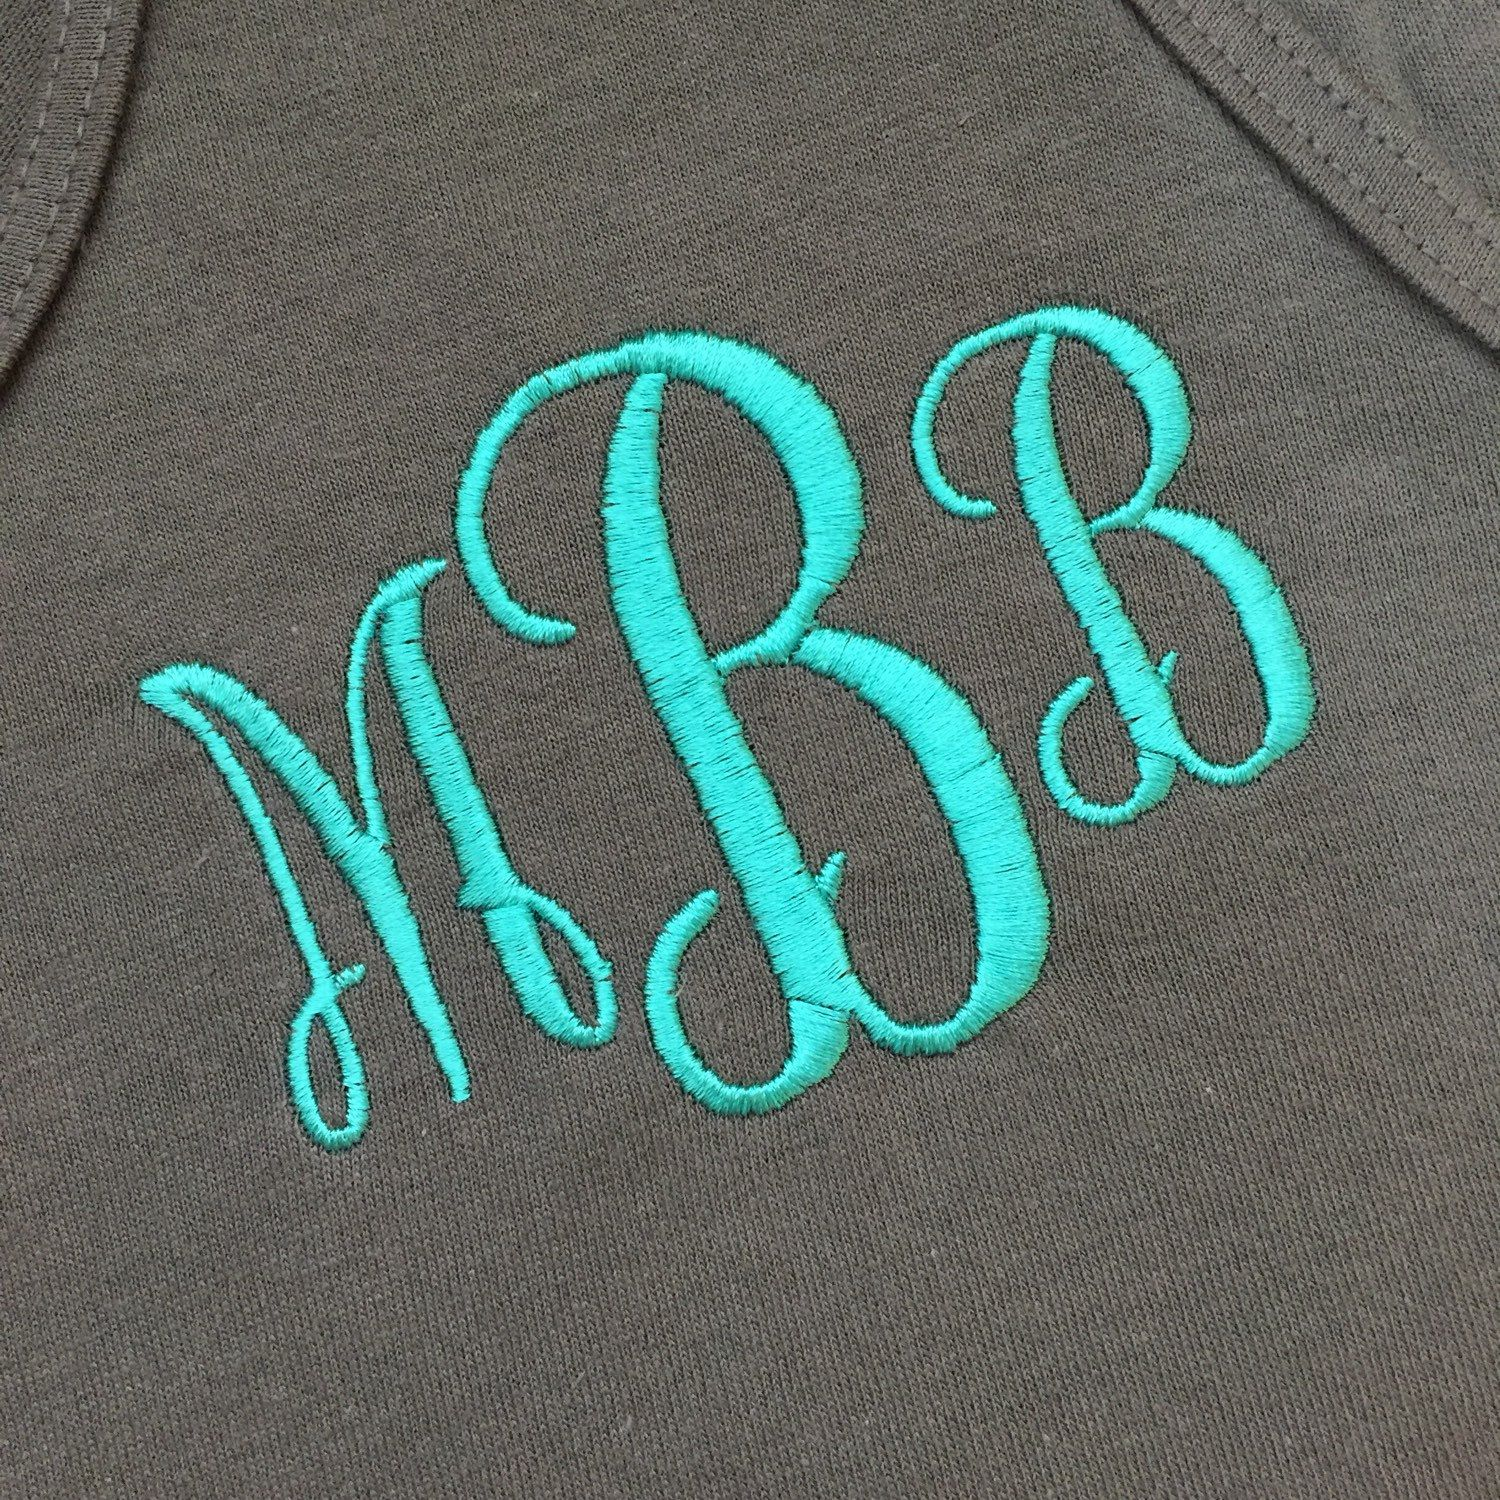 Ladies Monogrammed Tank Top, Custom Girls Monogram Swimsuit Cover Up or  Gym, Personalized Embroidered Initials Name Beach Top Shirt